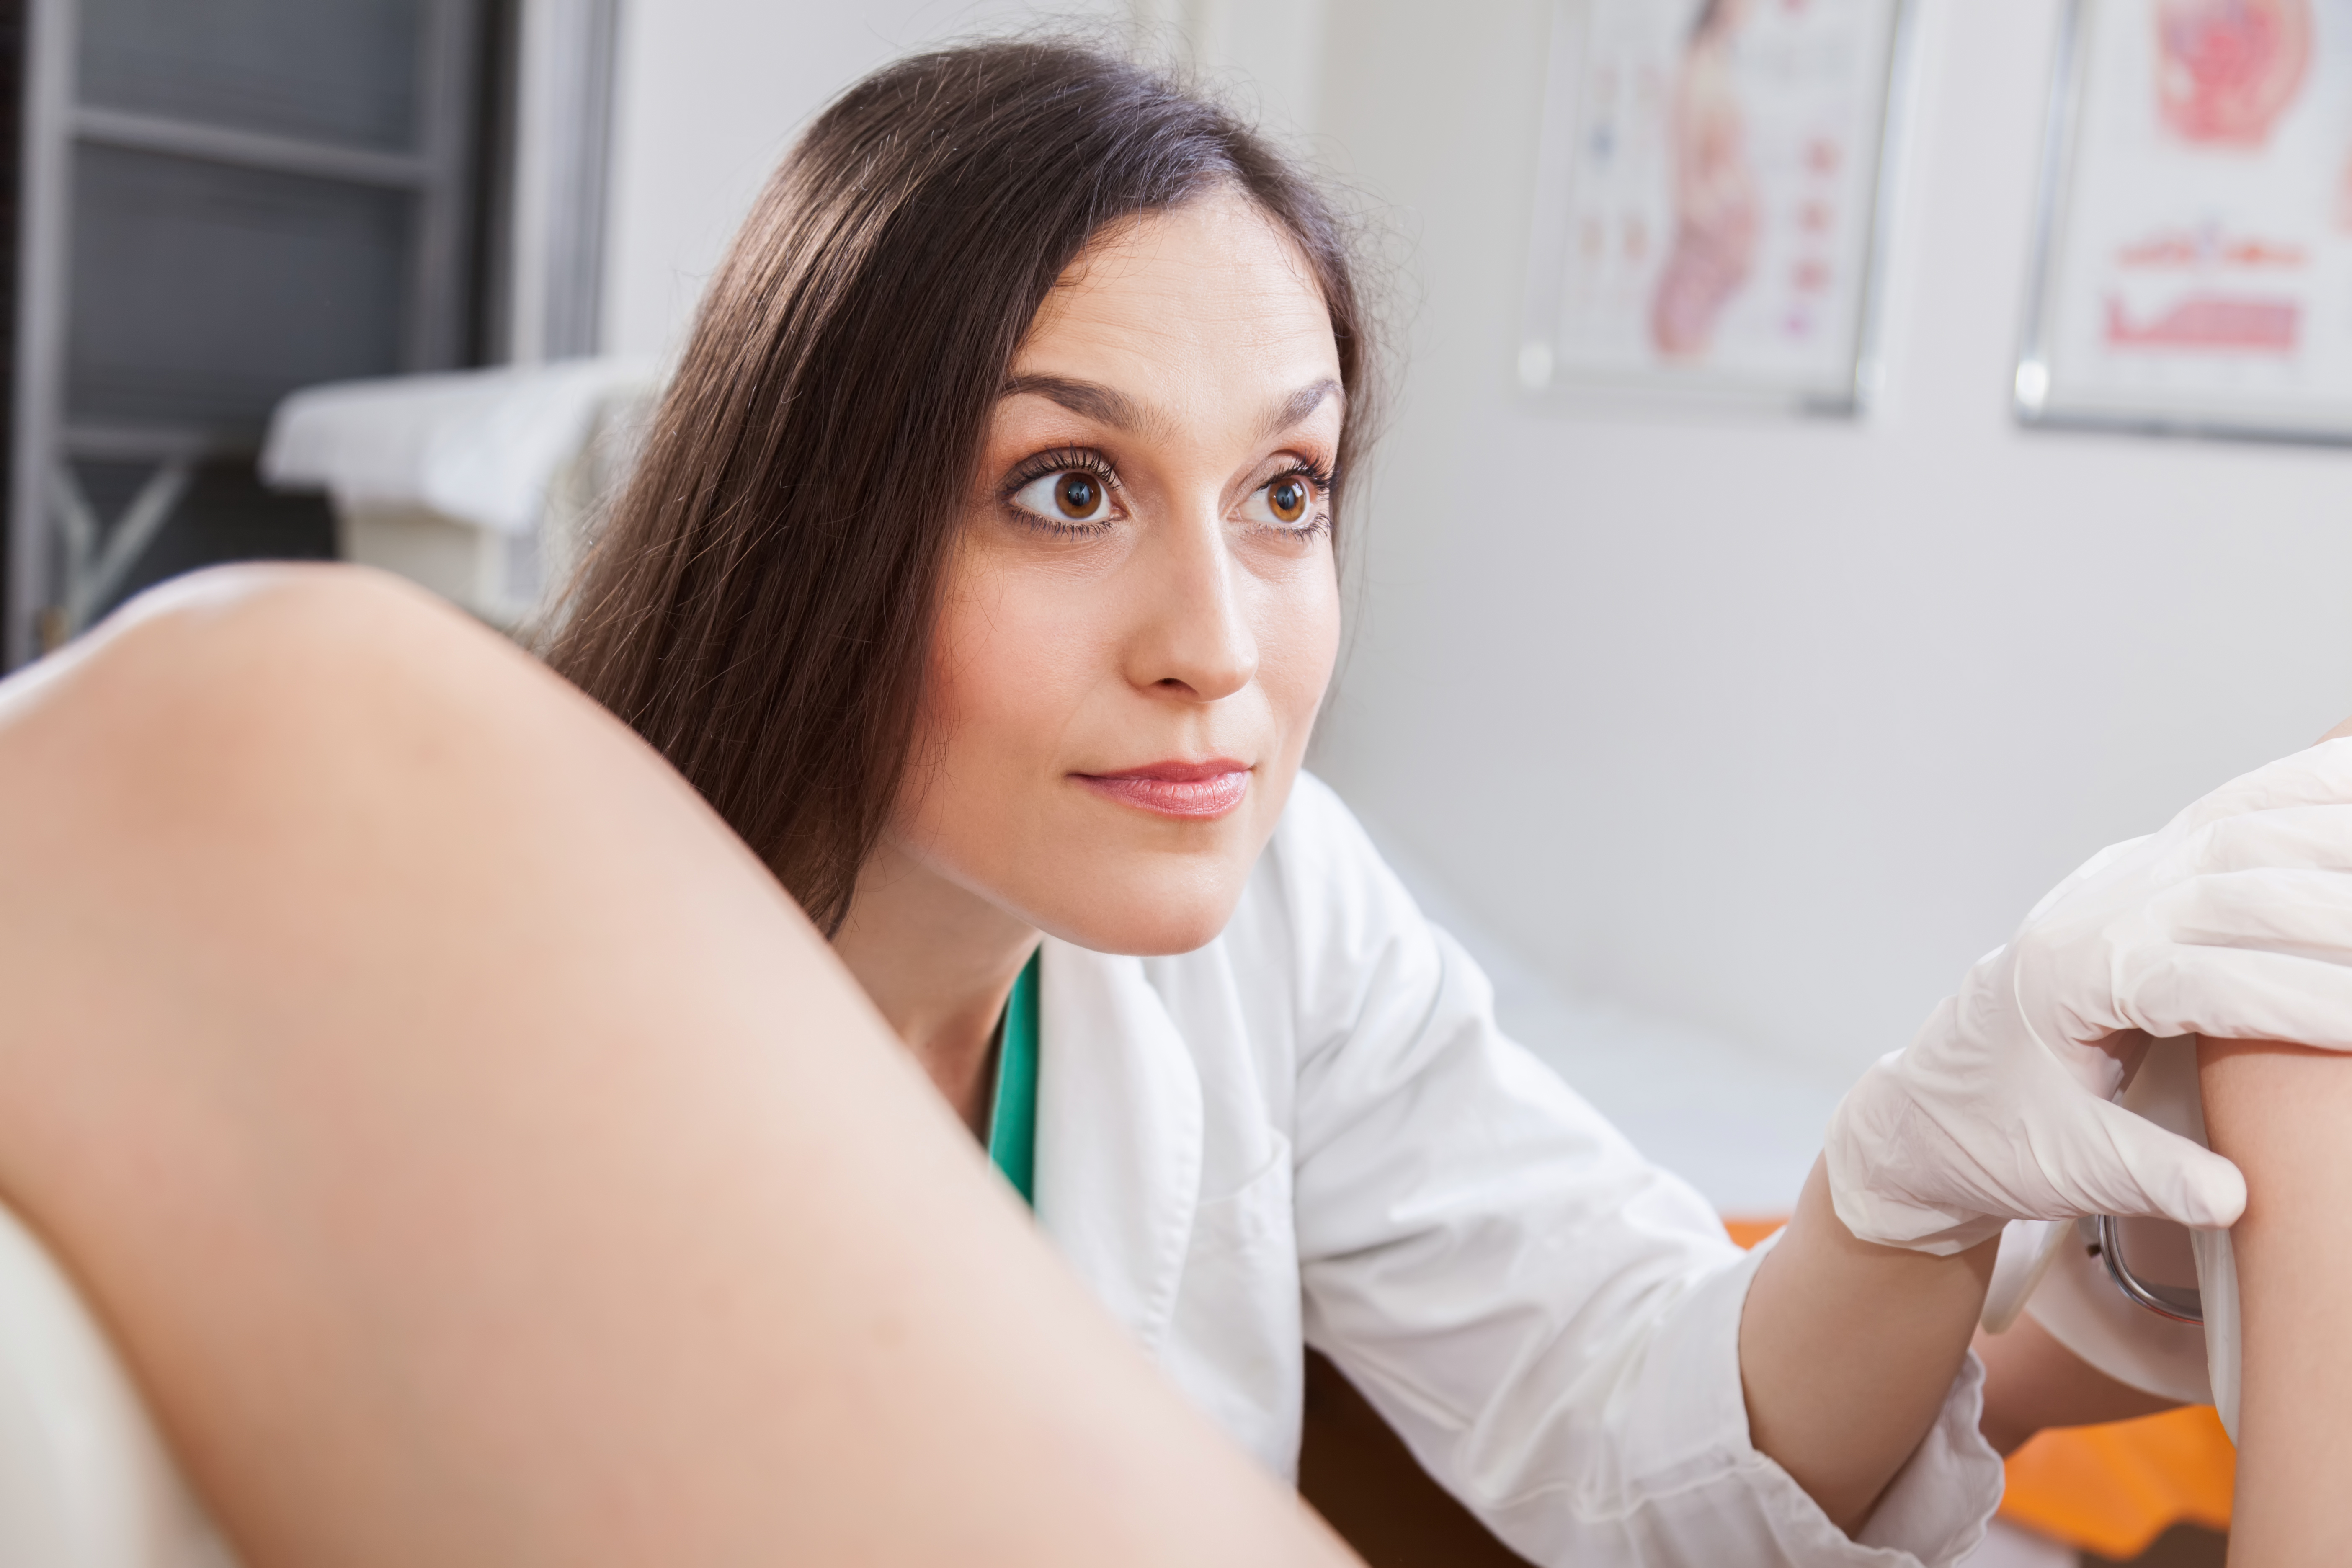 Girls putting tampons in at a gynecology exam photos 111